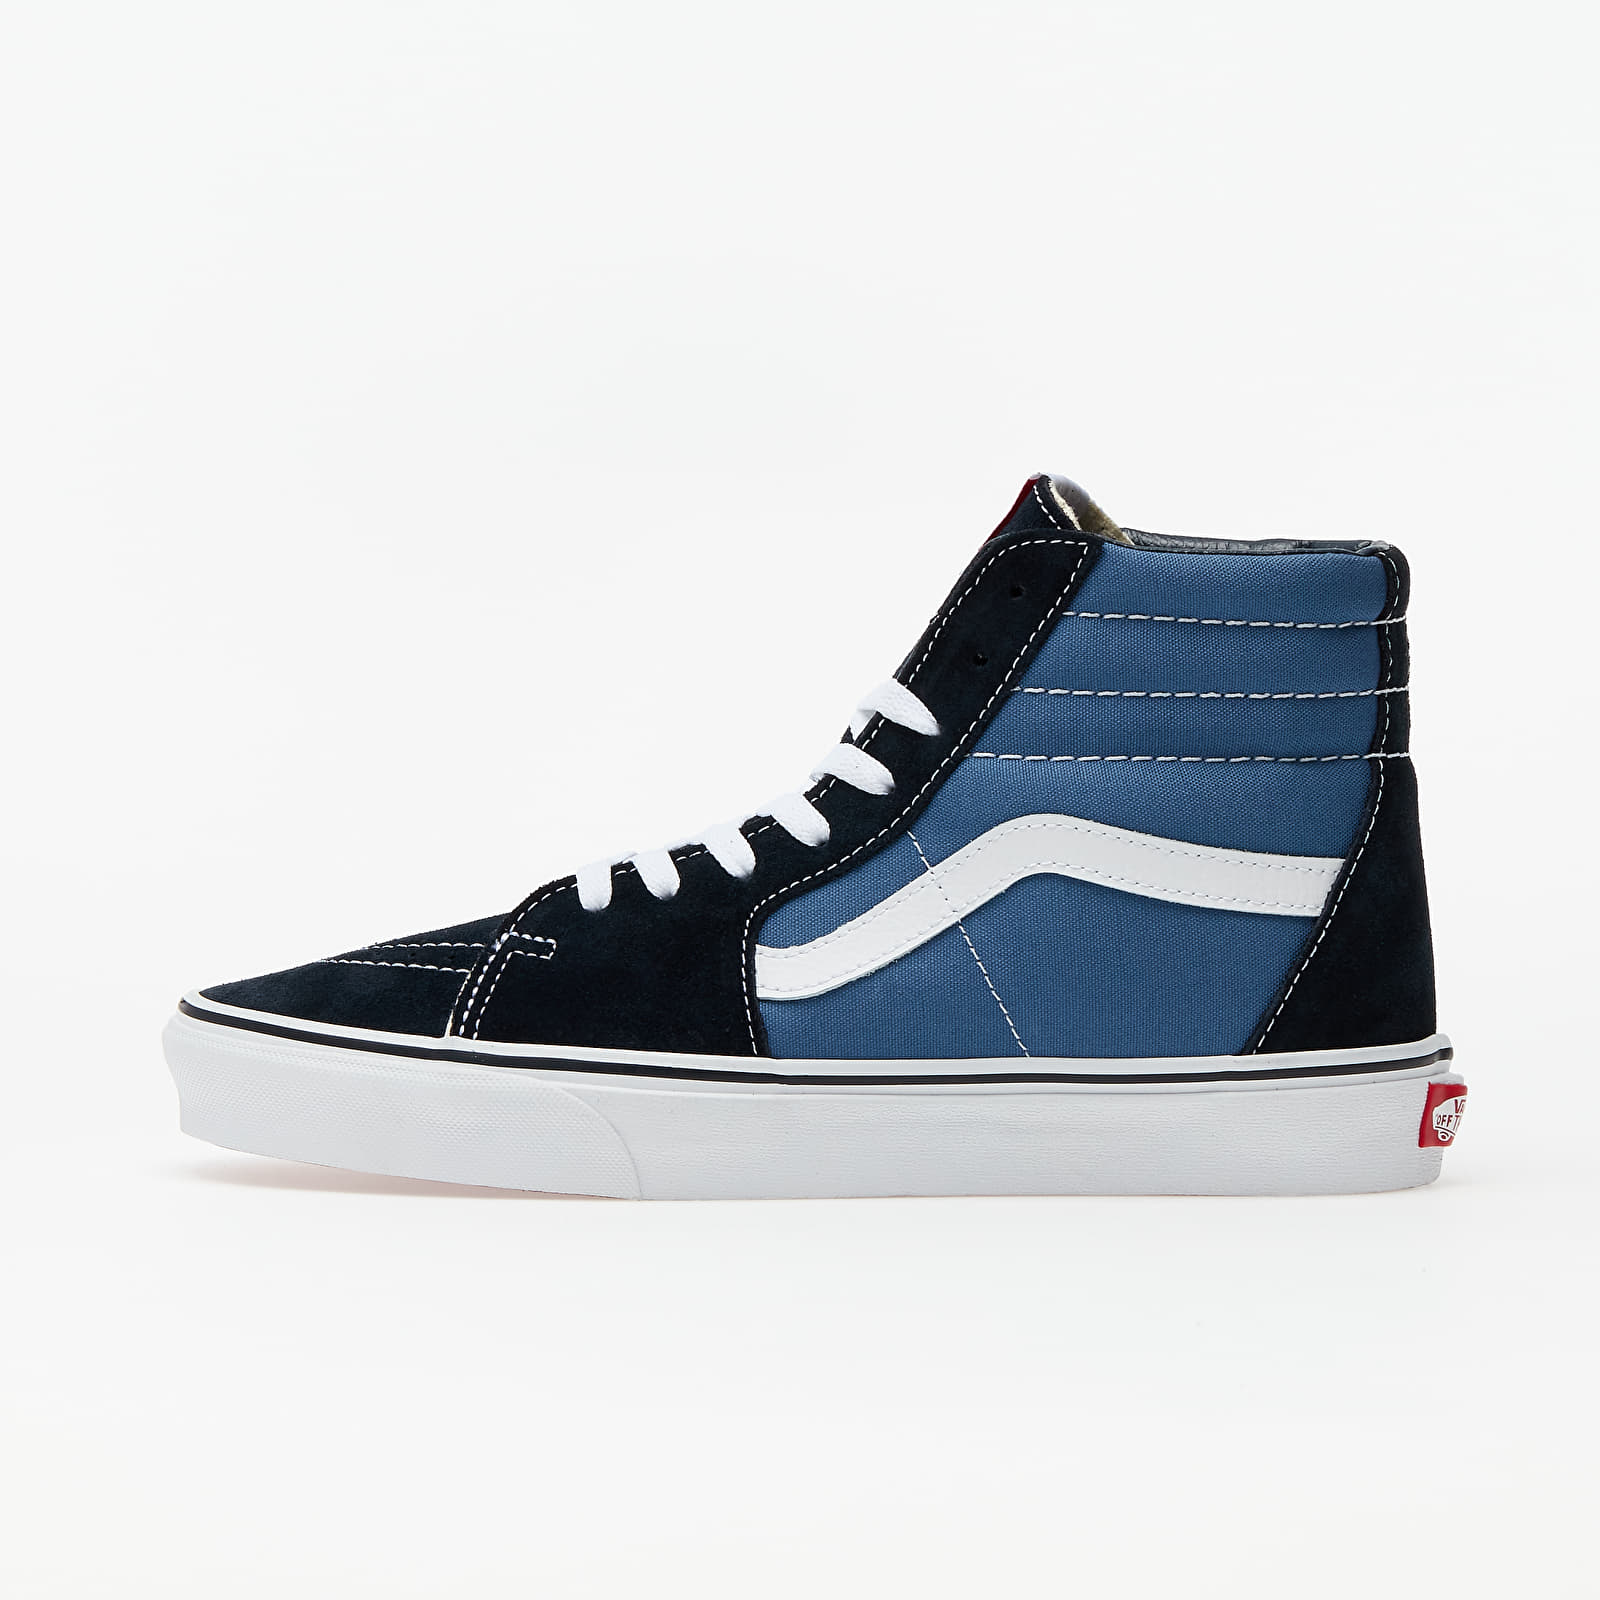 Men's shoes Vans Sk8-Hi Navy